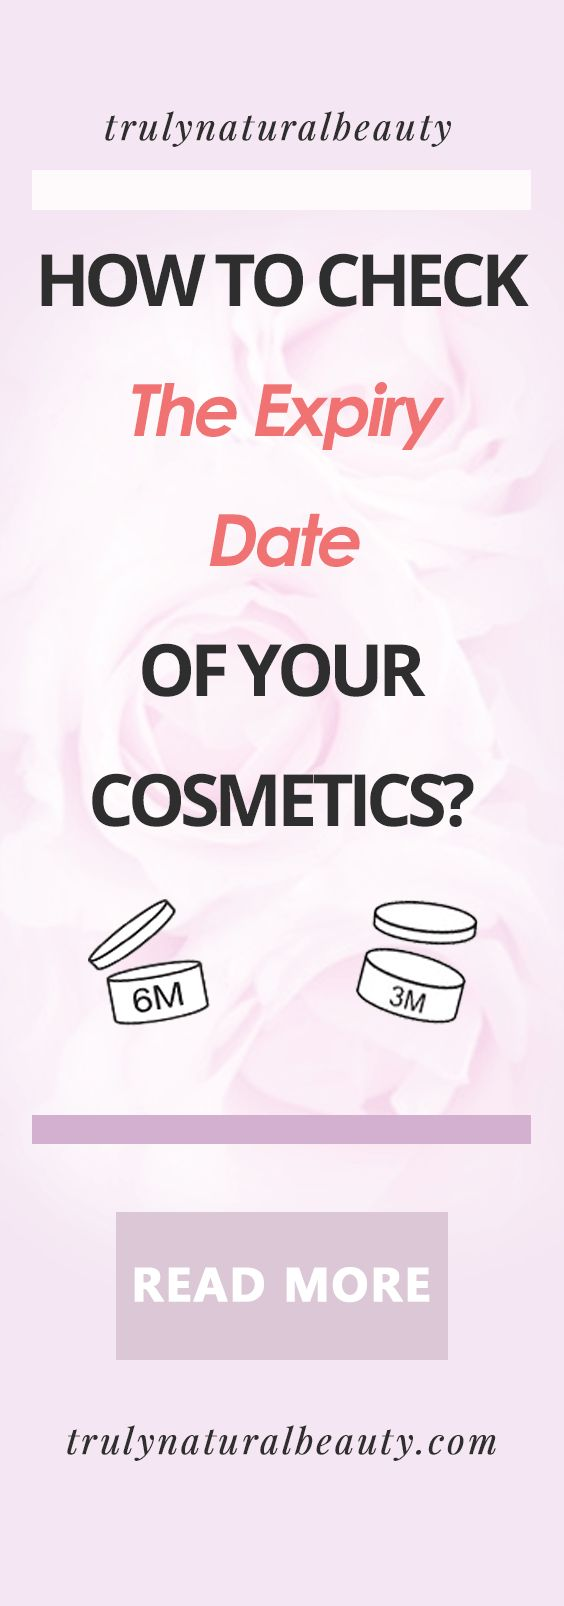 How To Check The Expiry Date Of Your Cosmetics Pinterest, PAO date, expiry date, what does expiry date mean, cosmetic expiry date check, checkcosmetics, truly natural beauty, green beauty blogger, natural beauty line, organic beauty cosmetics, expired cosmetics, expired lipstick, expired perfume